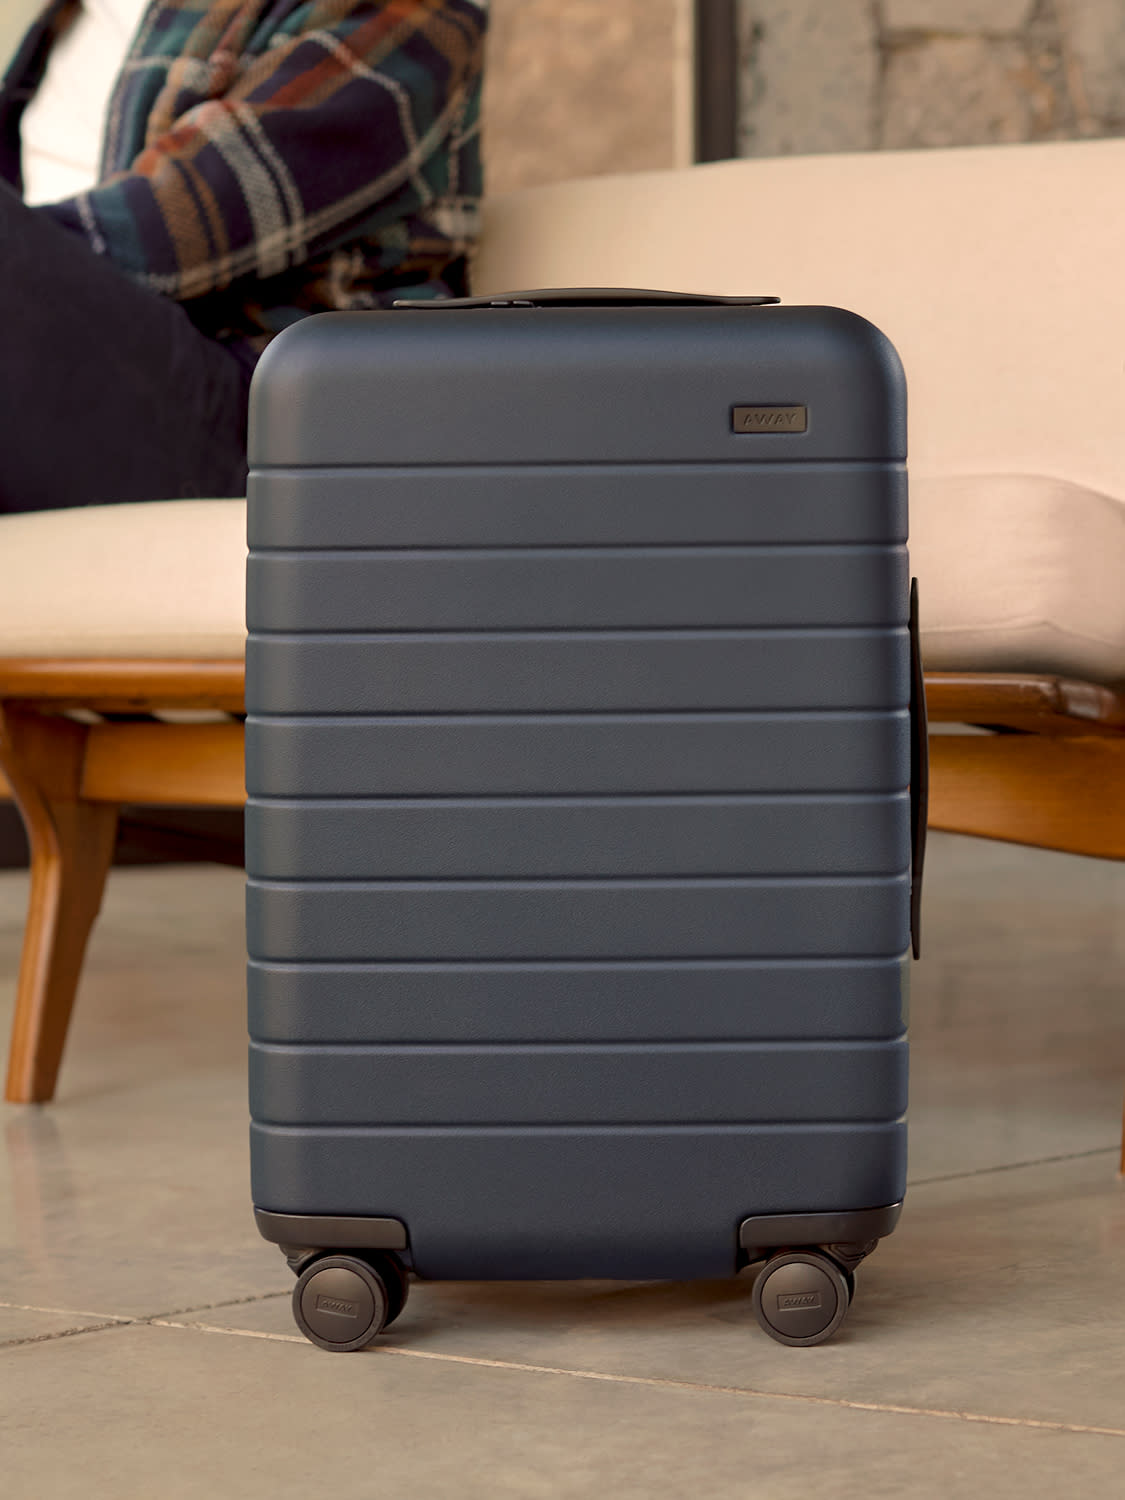 A man sitting on a bench behind his carry-On suitcase in navy blue.